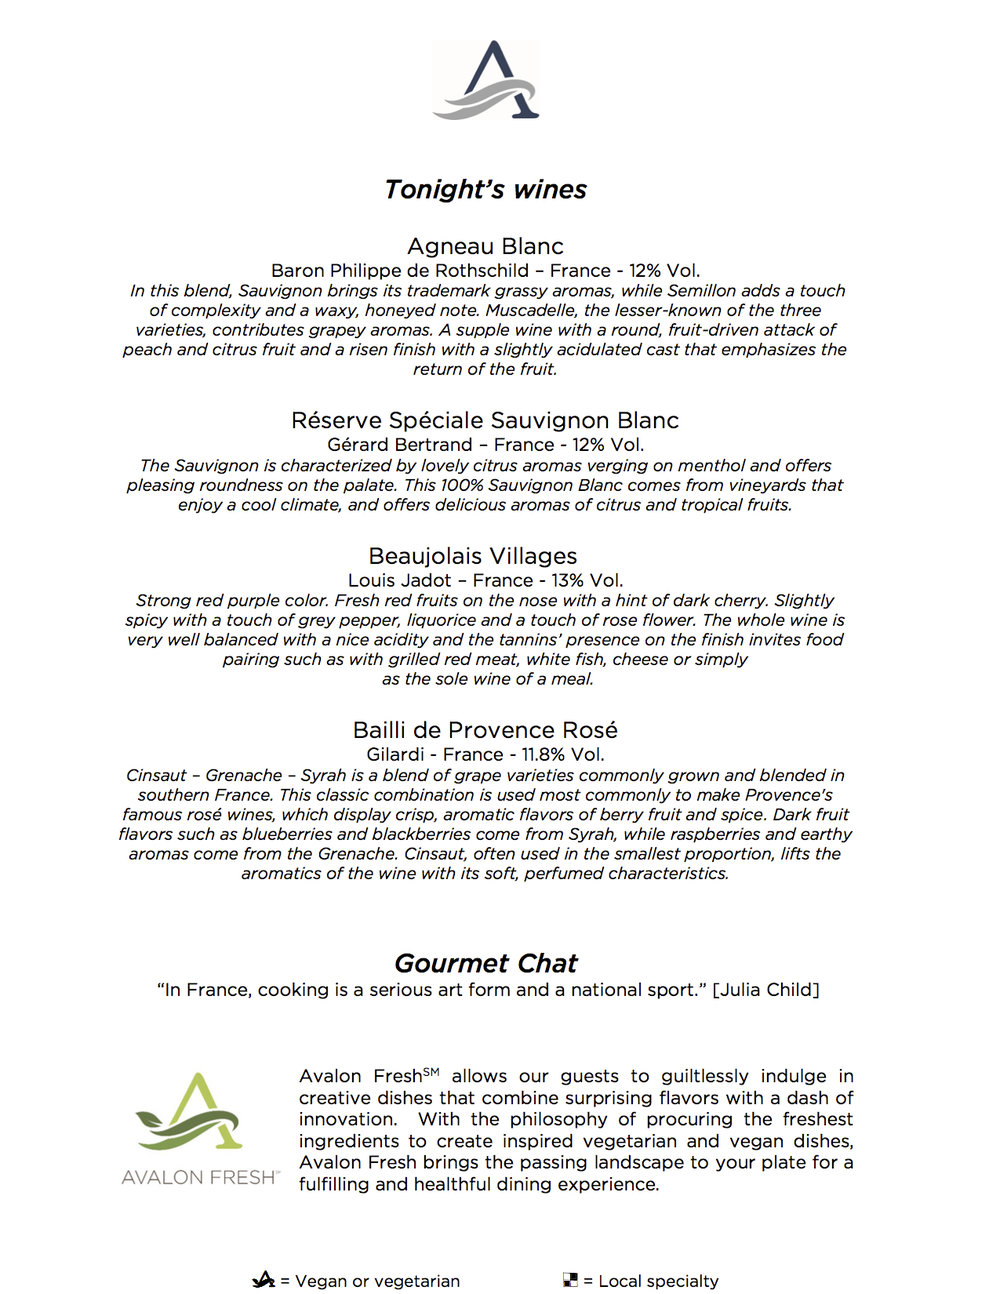 Dinner Menu Sample